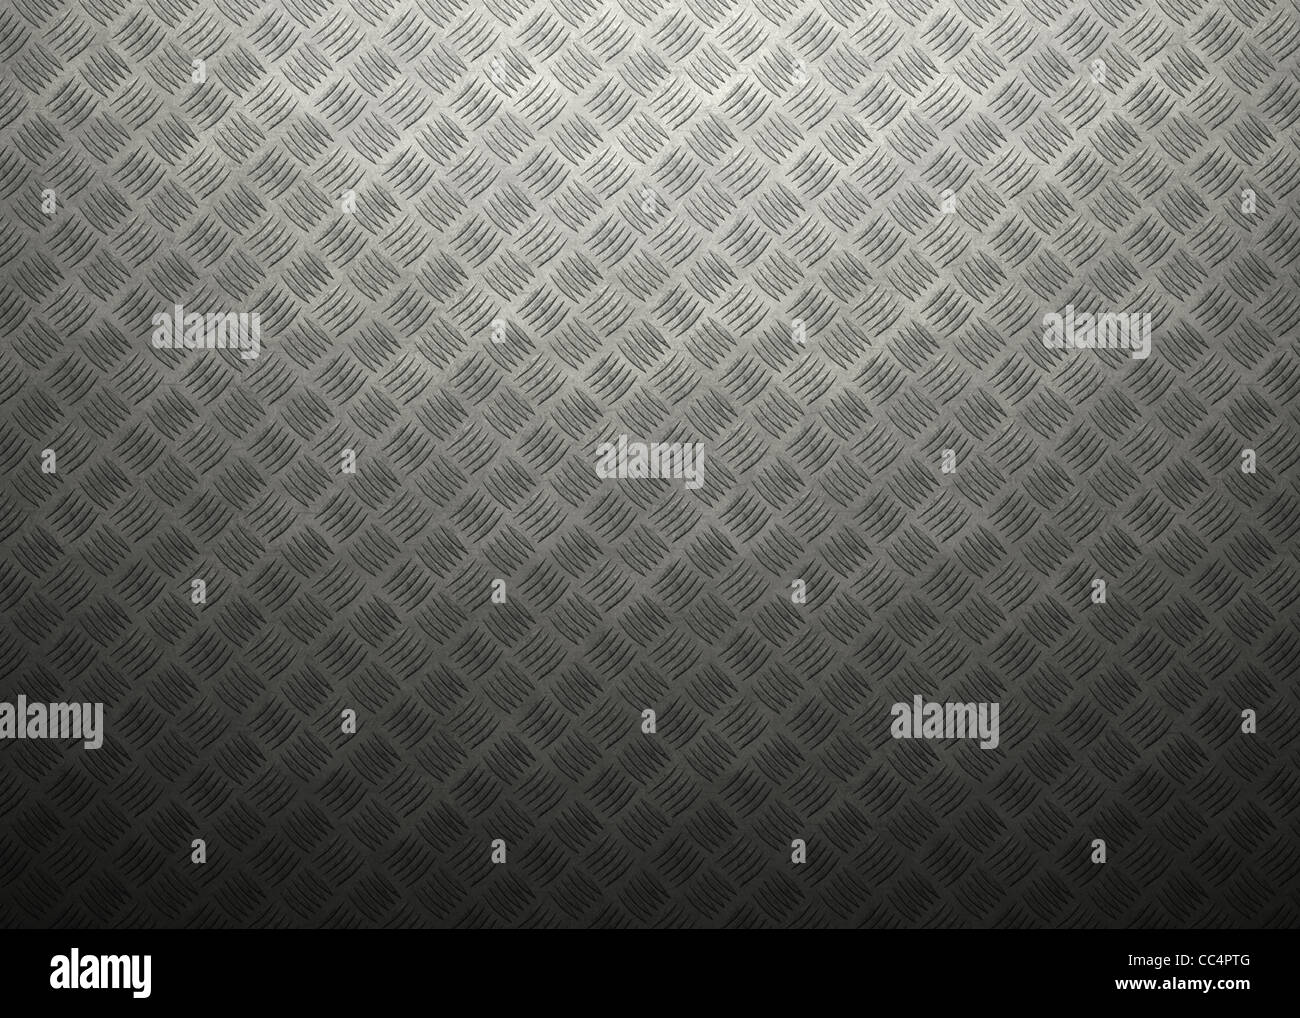 Metal grating with atmospheric light and shading, great for industrial and construction designs and backgrounds. Stock Photo